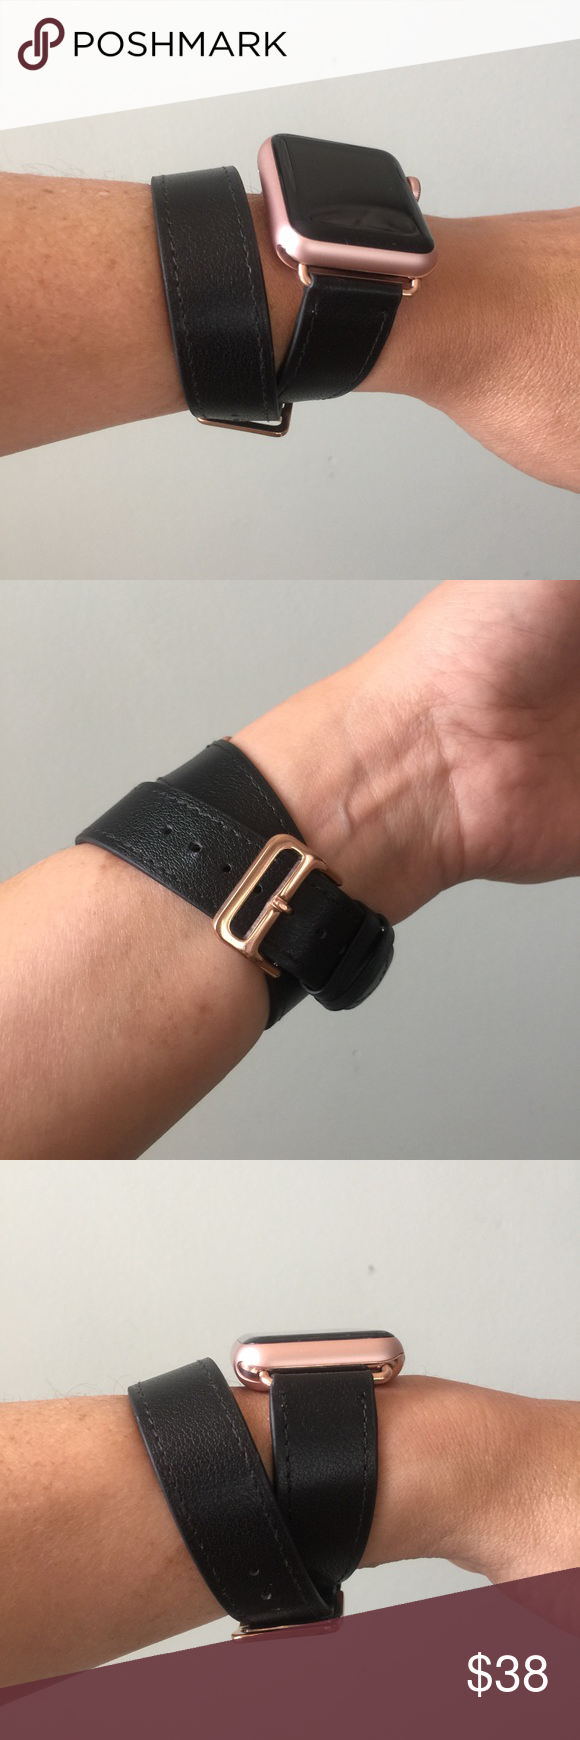 3bac2dcbd Black Apple Watch double tour band with ROSE GOLD! Black Apple Watch double  tour band with ROSE GOLD adapters and buckle. It comes with either 38mm or  42mm ...